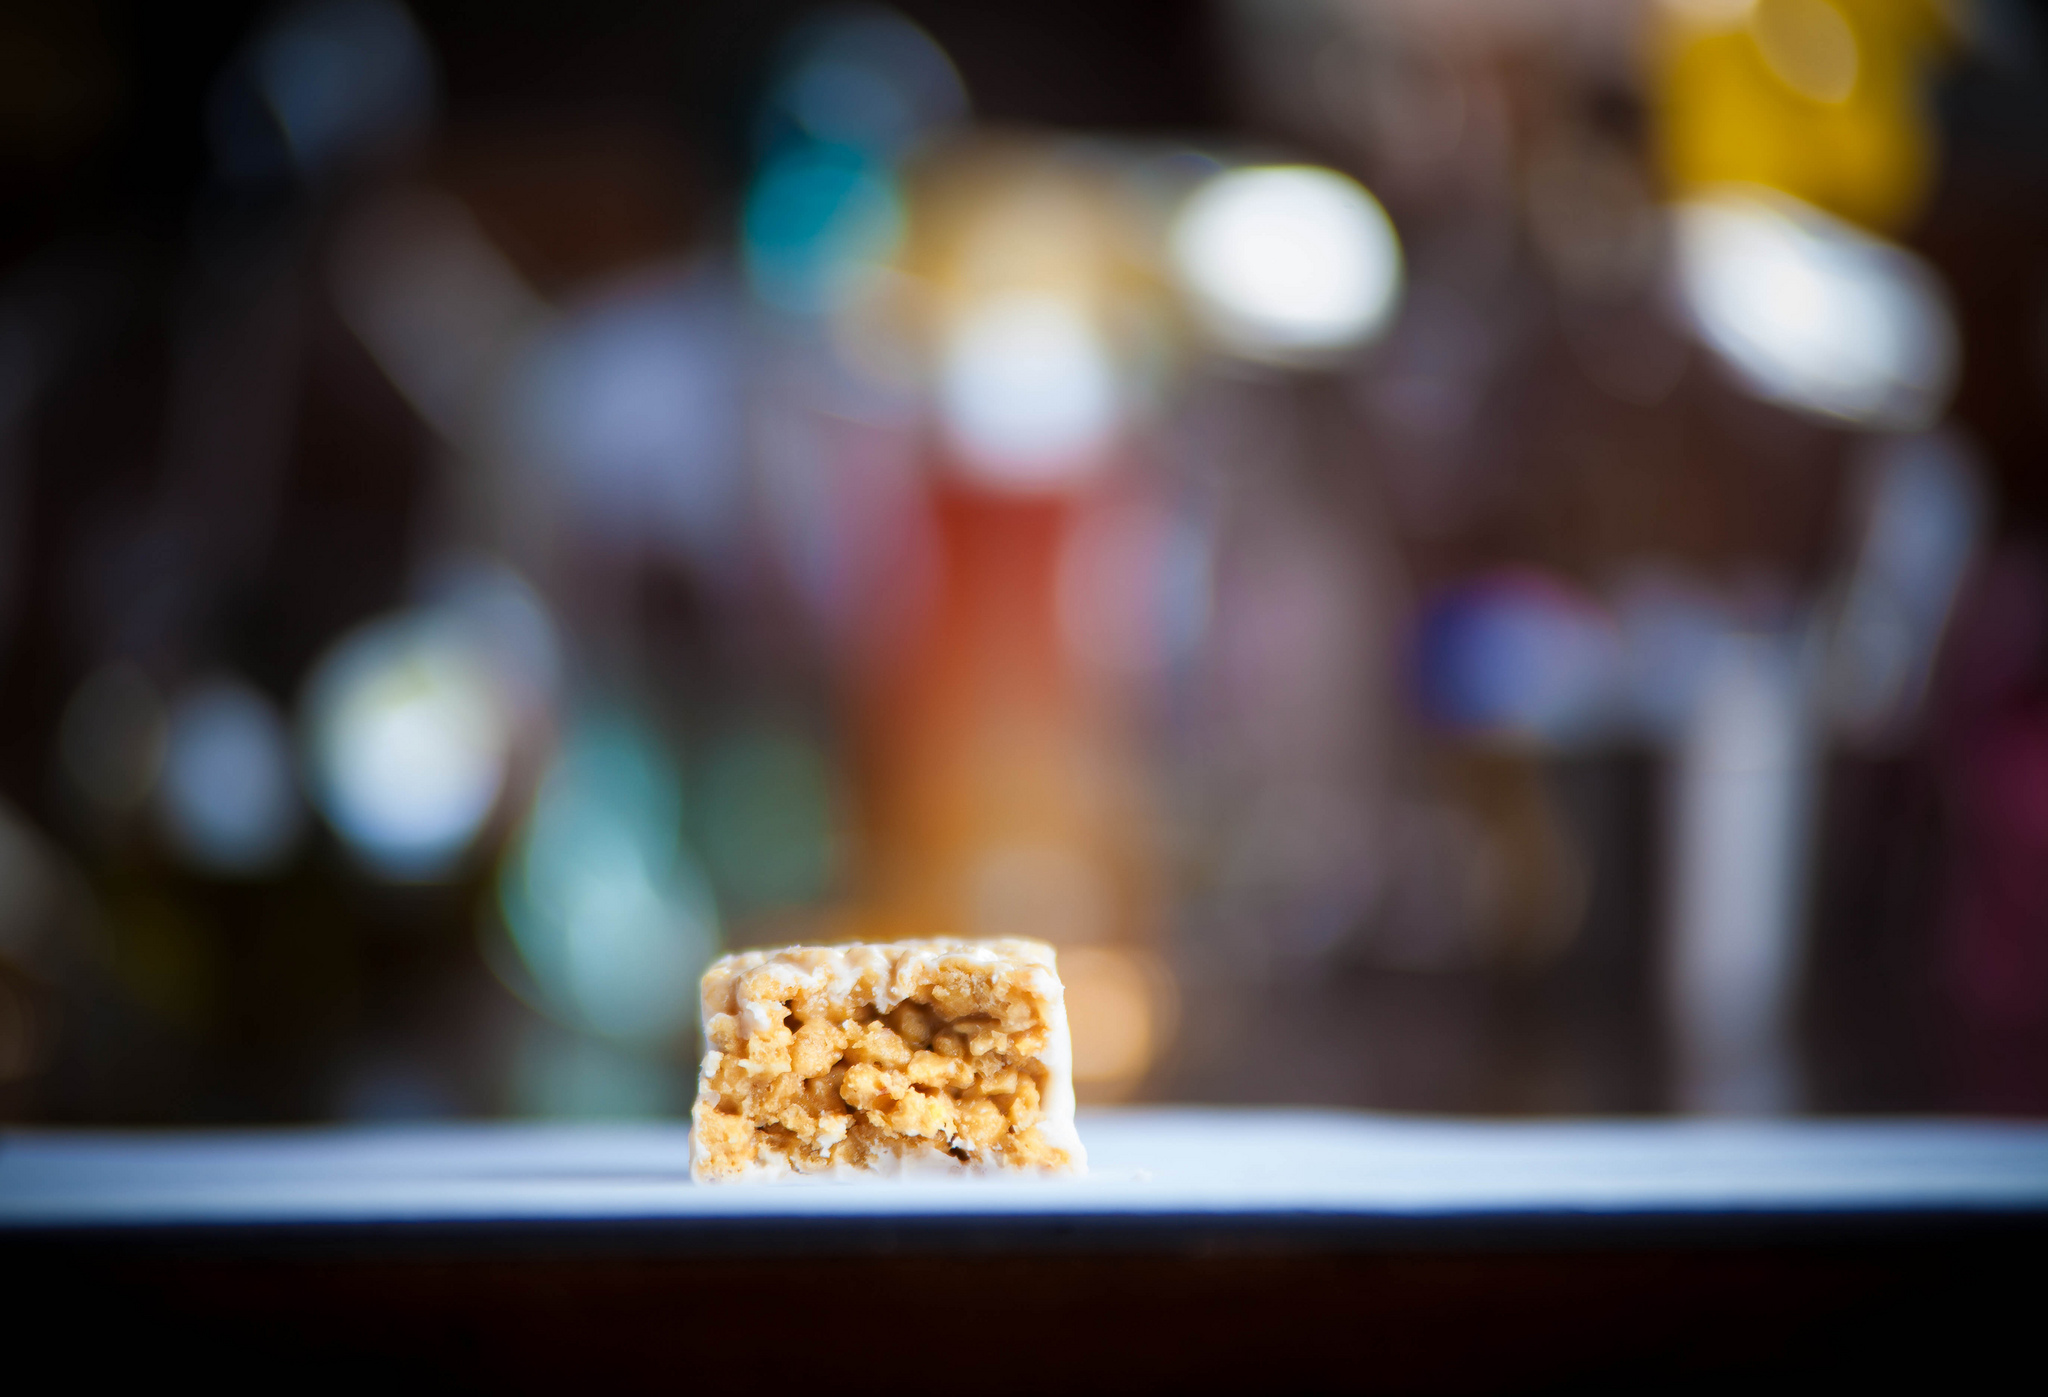 Packing some cereal bars will come to the rescue when hunger strikes. Image credit:  Sodanie Chea / Creative Commons